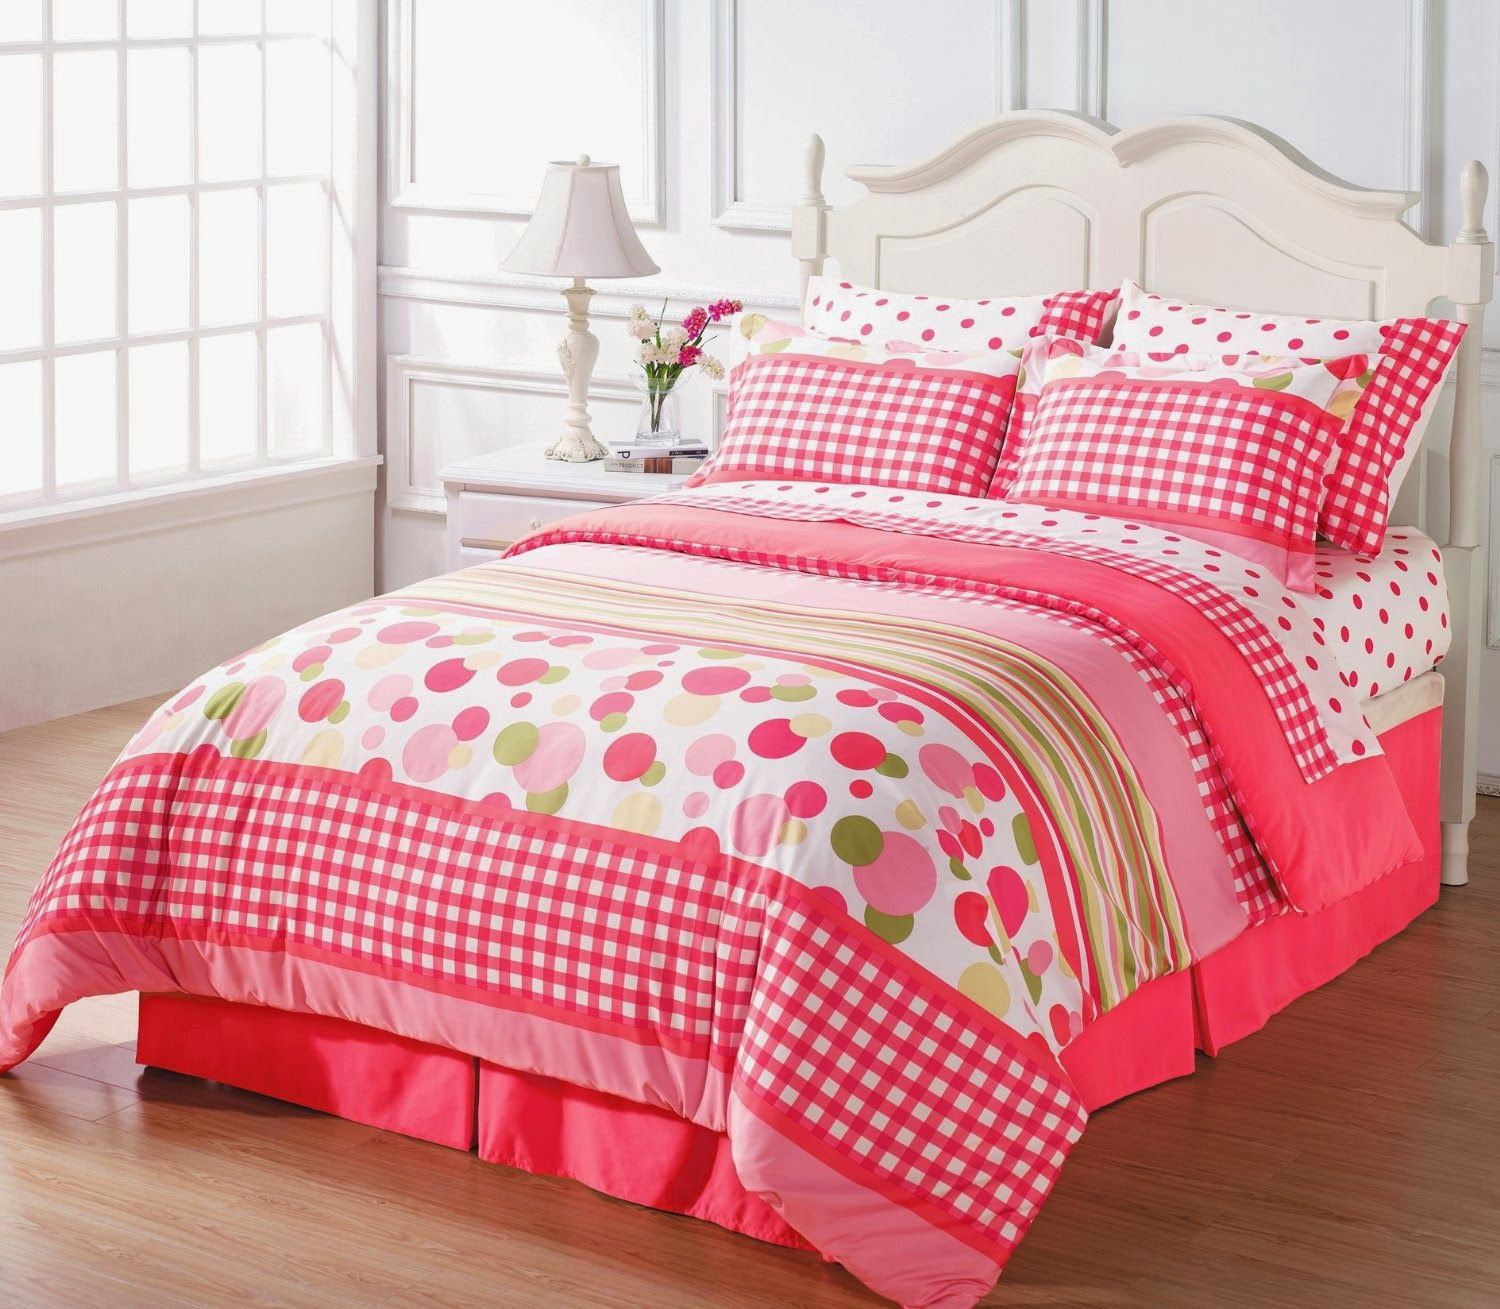 Bedroom Decor Ideas and Designs Top Ten Polka Dot Bedding for Girls